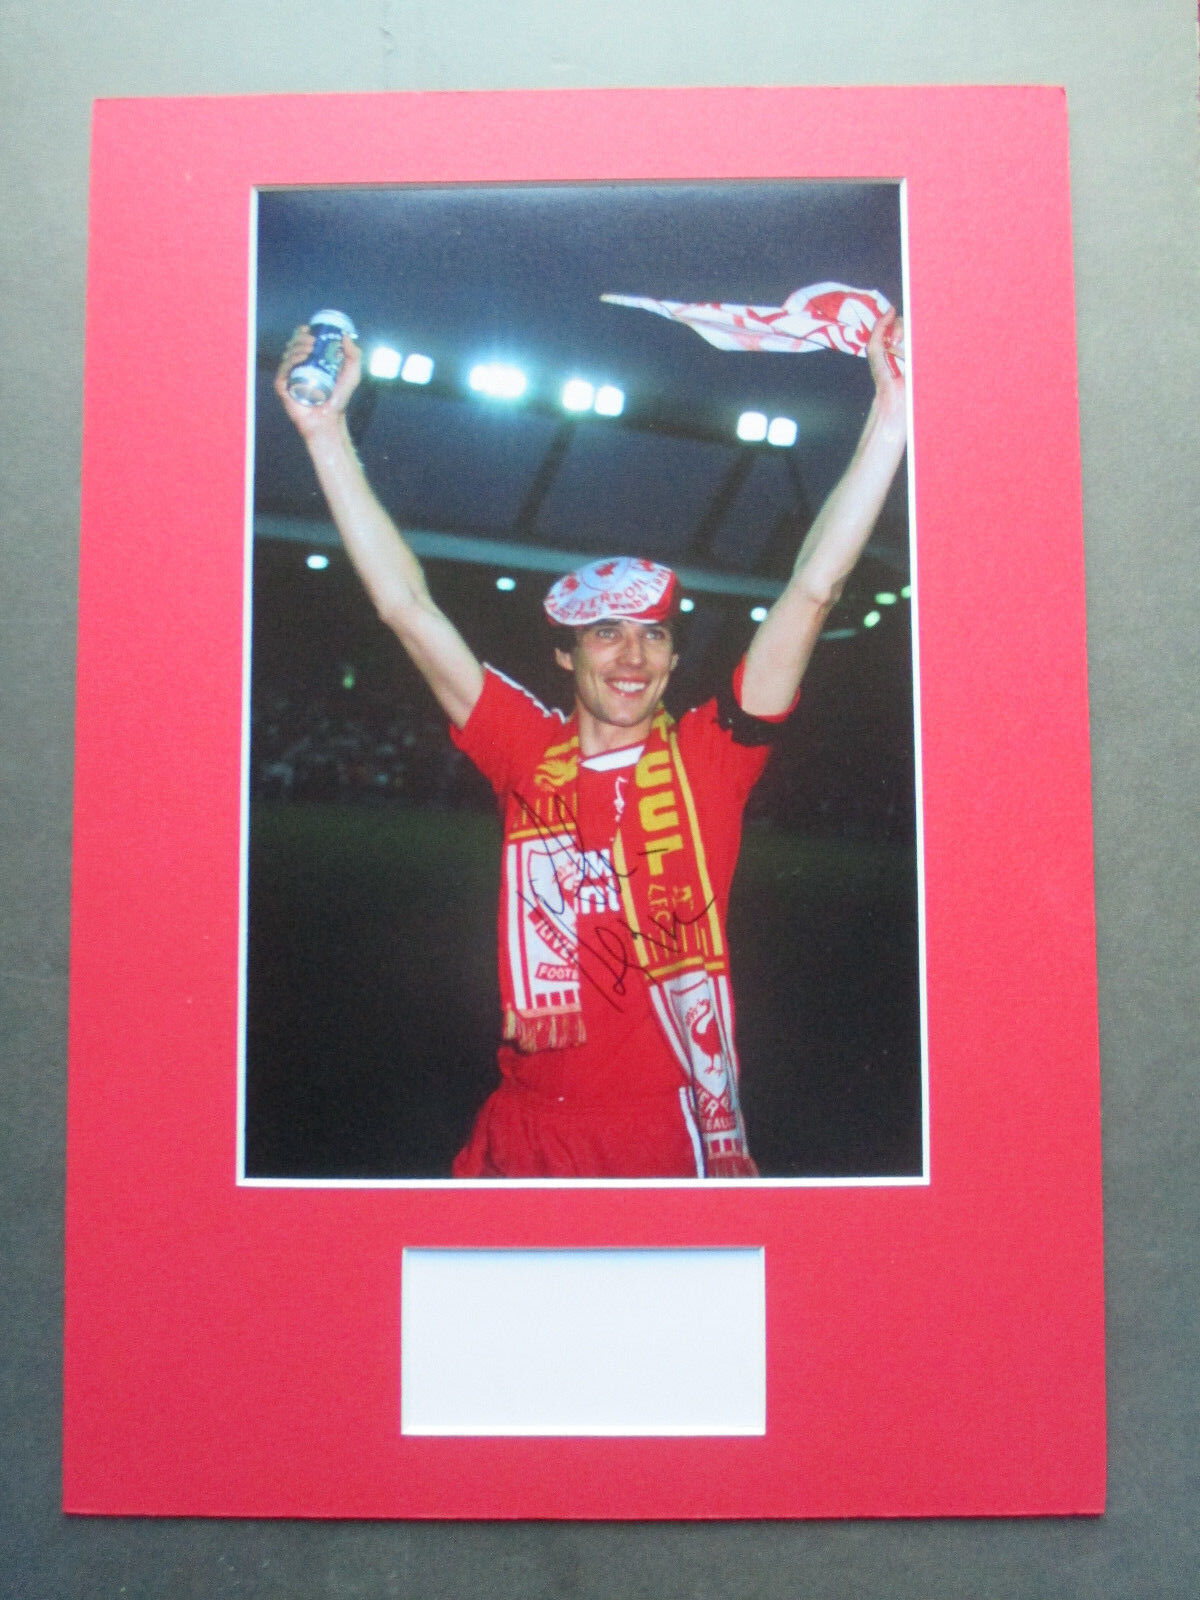 LIVERPOOL LEGEND ALAN HANSEN GENUINE HAND SIGNED A3 MOUNTED PHOTO DISPLAY - COA